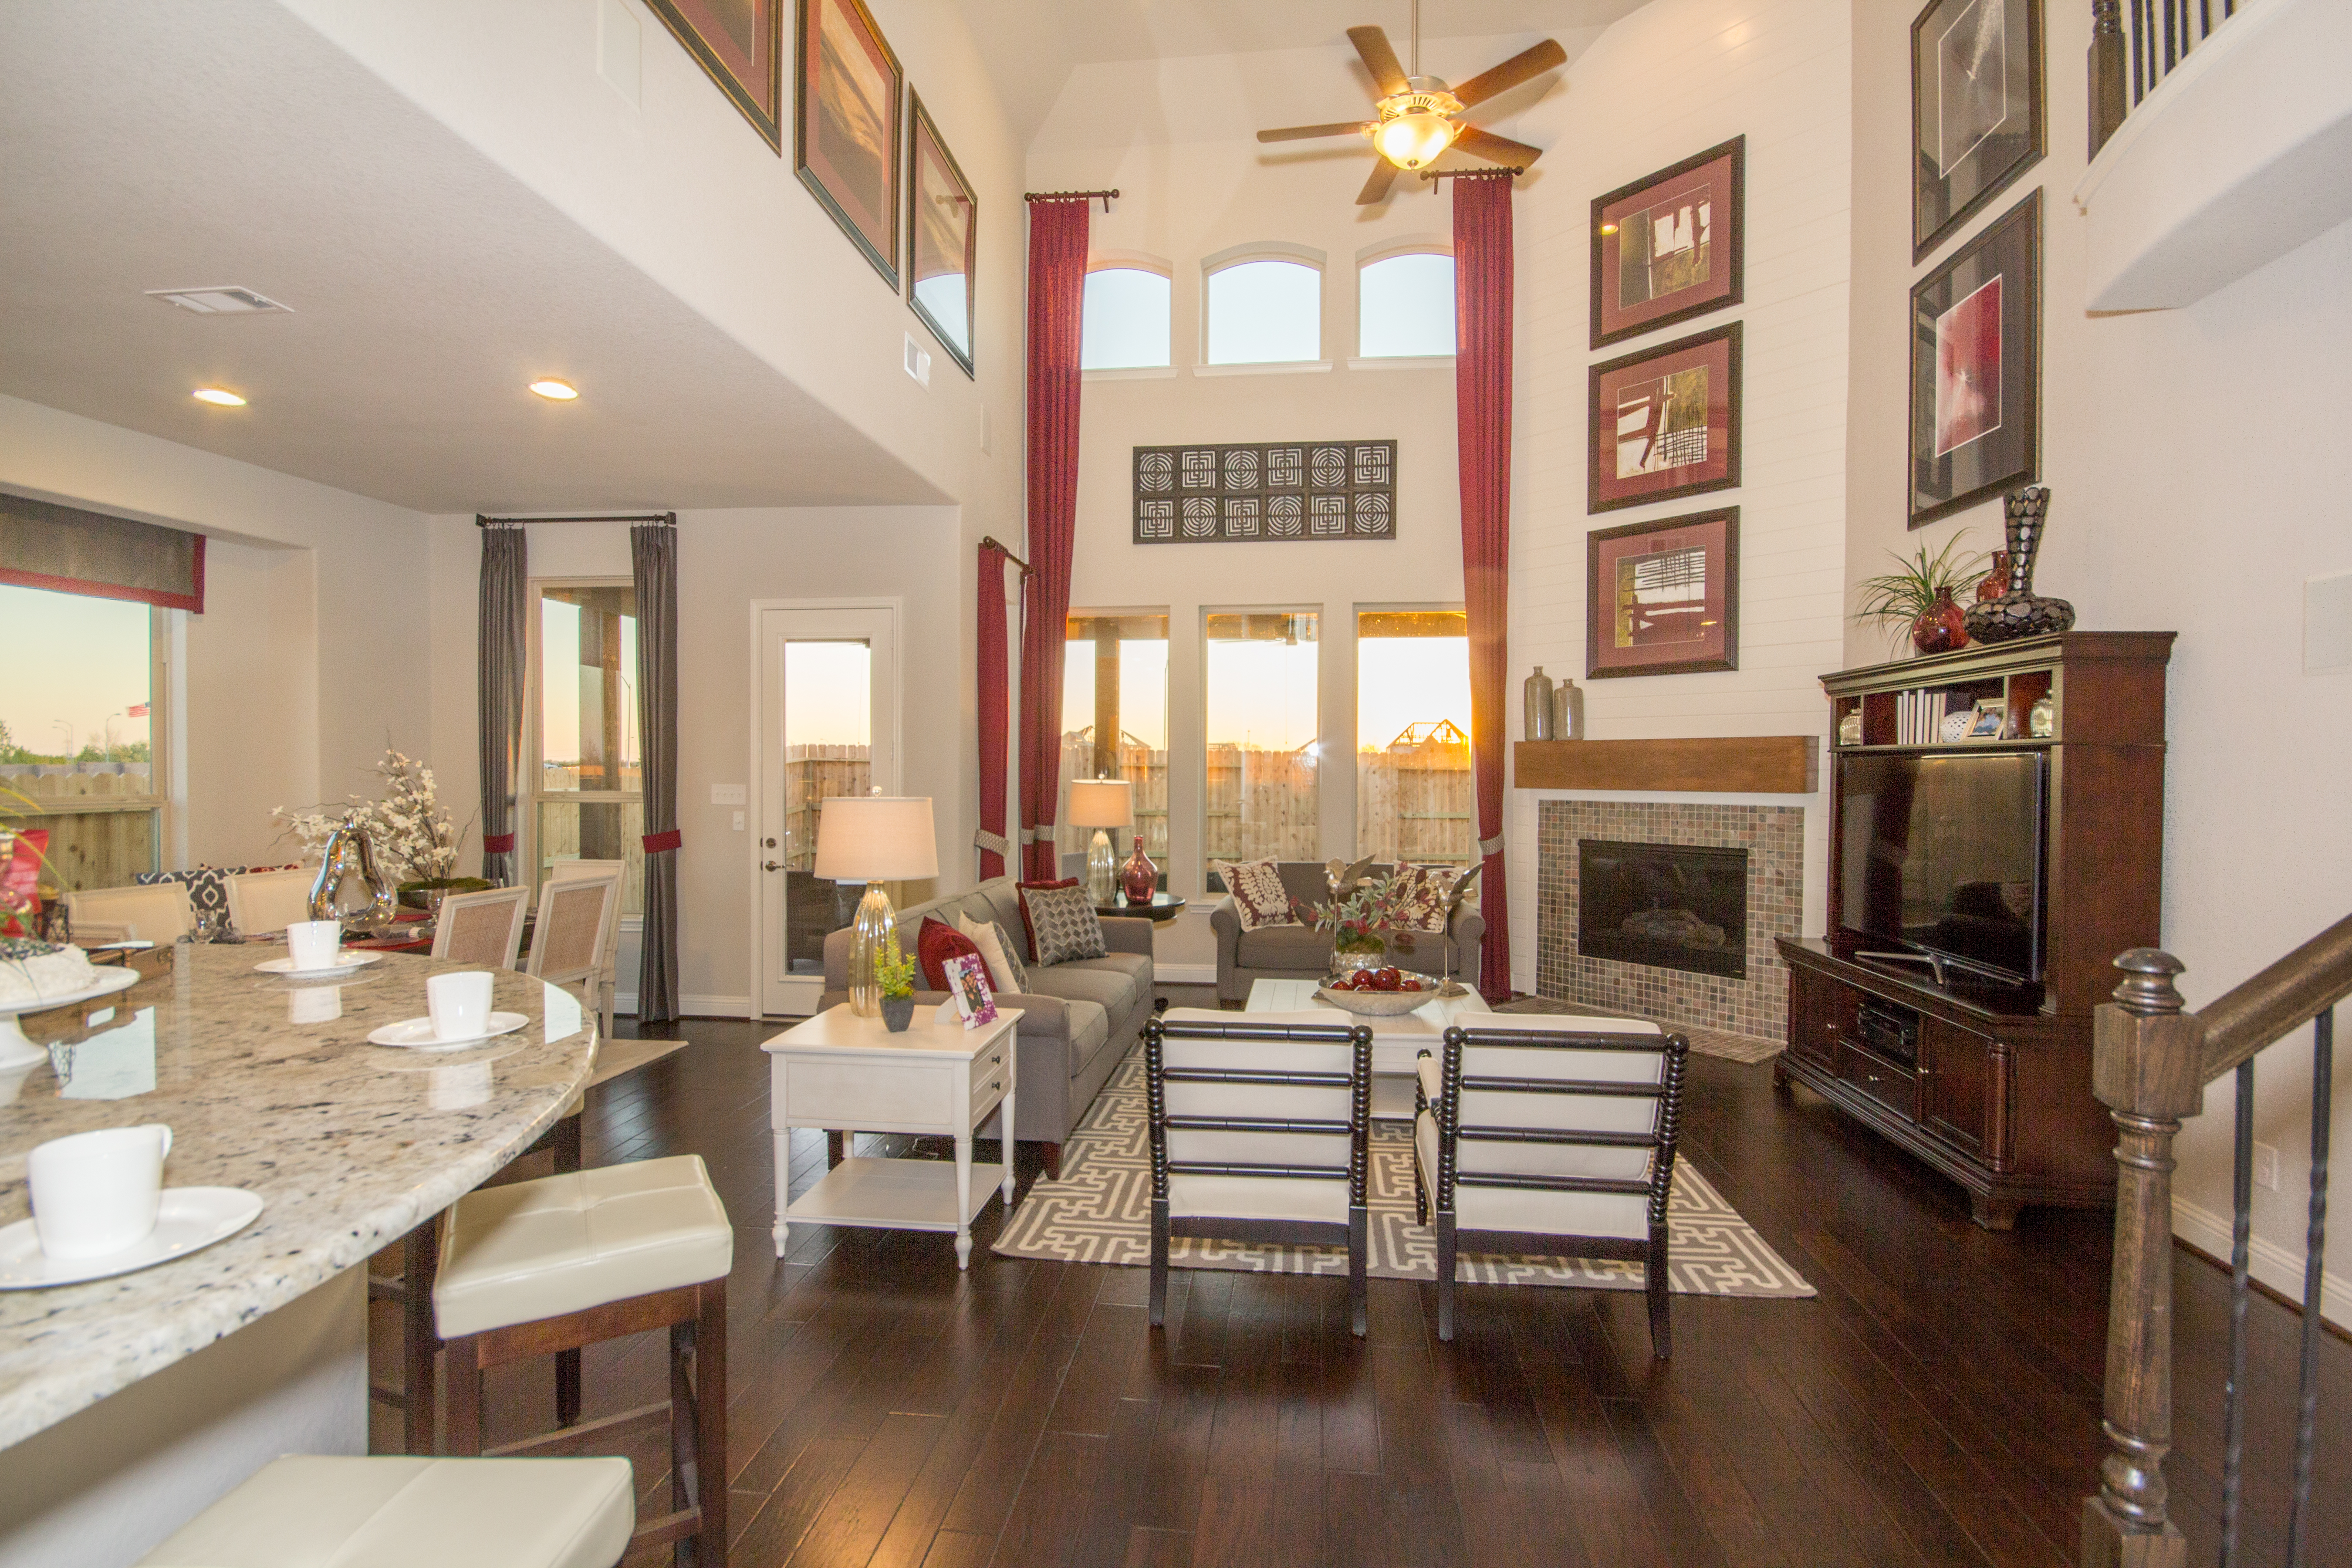 Ryland Homes Opens New Model at Eastlake at Gleannloch Farms ... on kb homes houston floor plans, lennar homes houston floor plans, perry homes houston floor plans, lgi homes houston floor plans, legend homes houston floor plans,